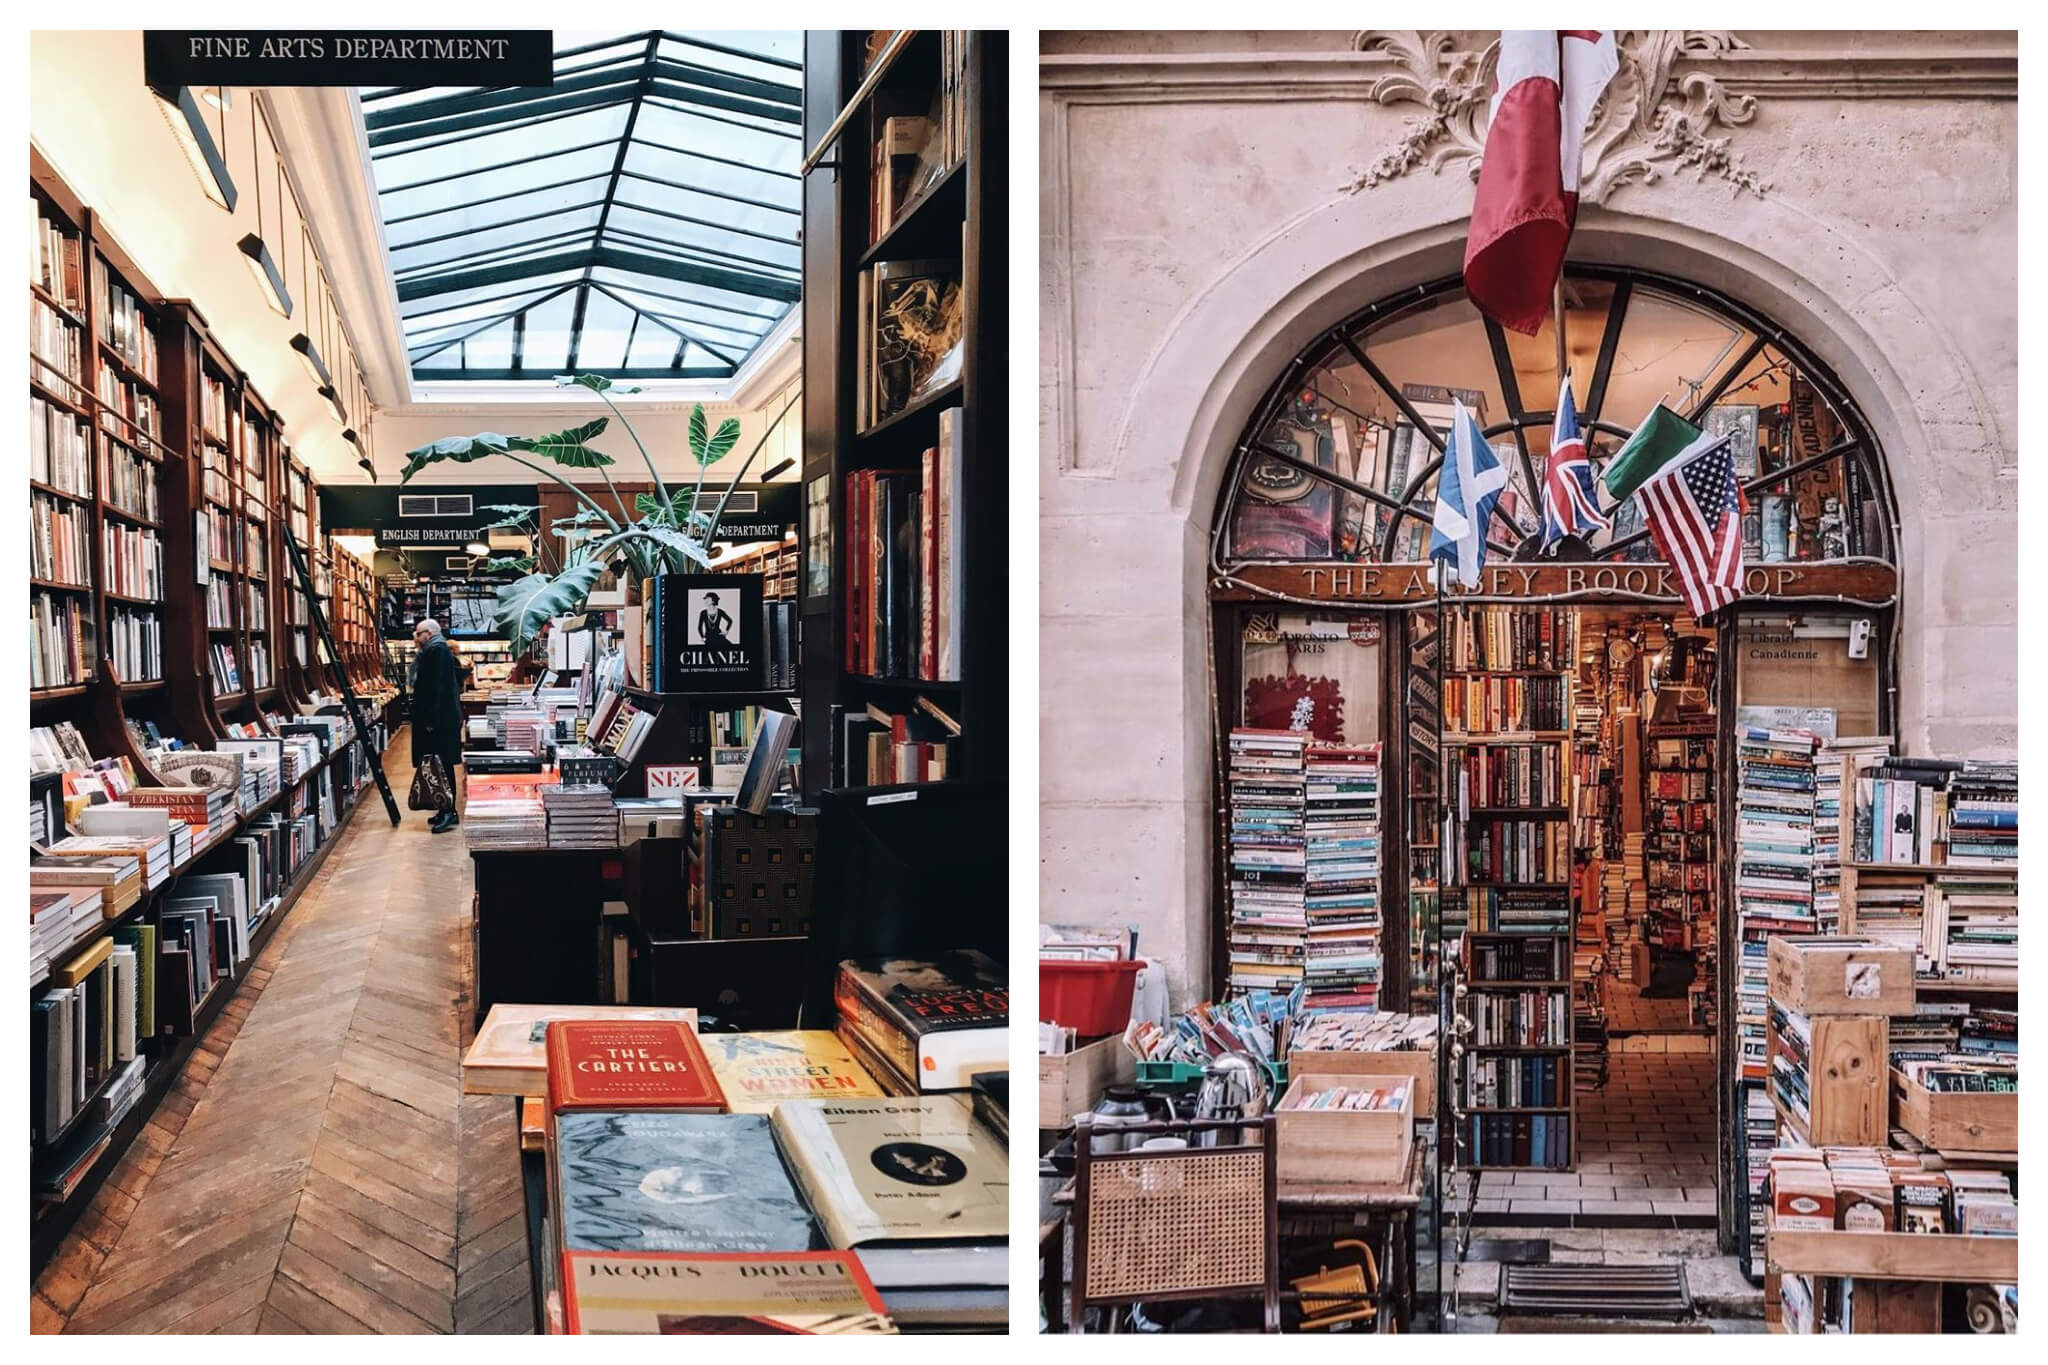 Left: The Galignani bookstore in Paris, with many books on display on the shelves. A man in the background can be seen looking at the books, Right: The front of The Abbey Bookshop in Paris, with multiple flags (including the American and British flag) and boxes of books.